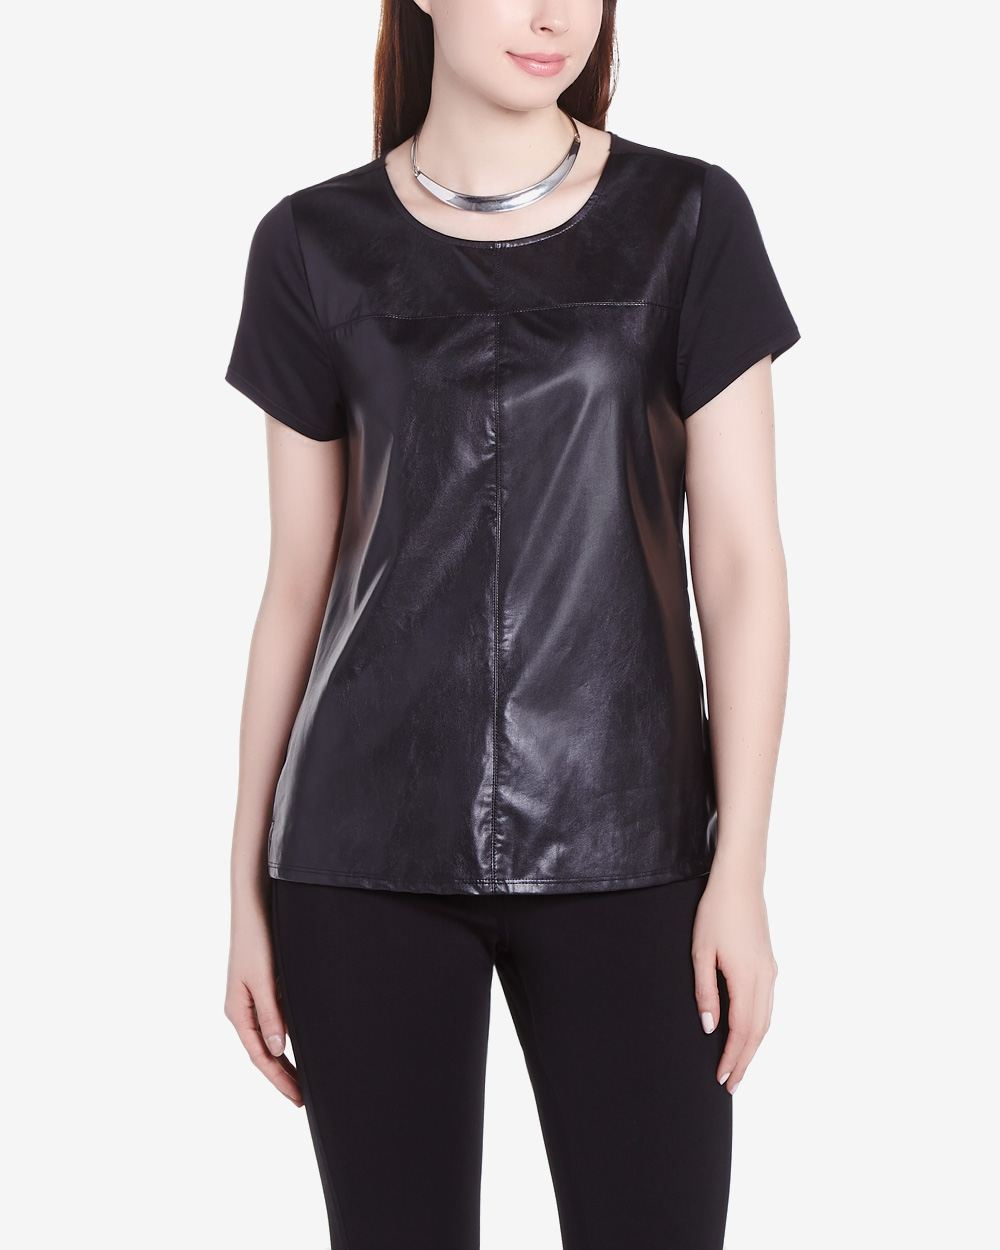 Rock Shine Faux Leather Short Sleeve T Shirt Women